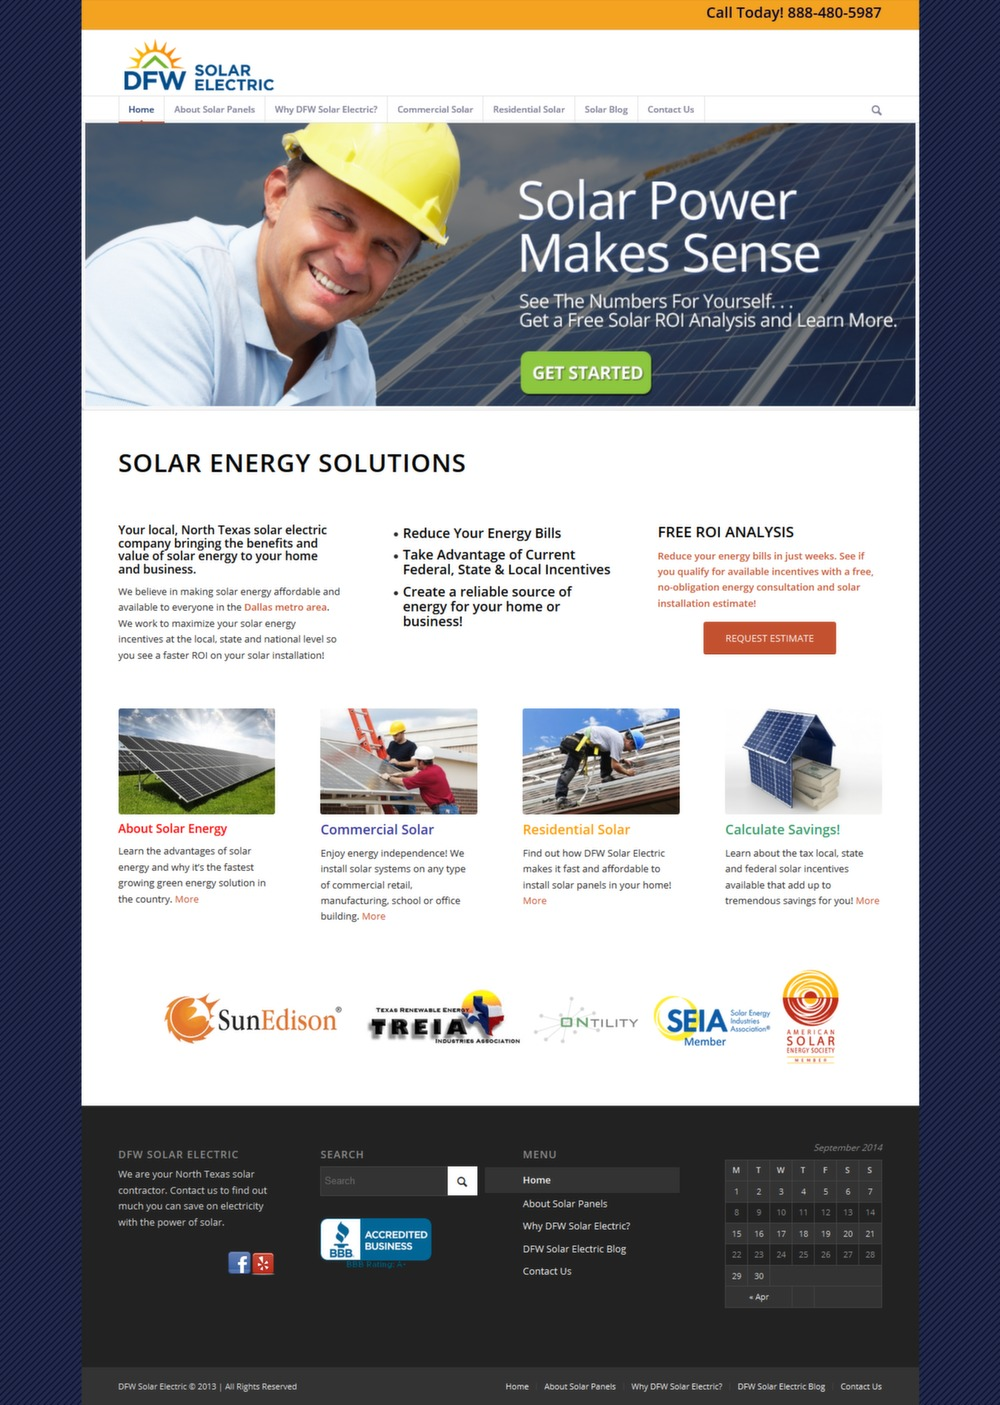 DFW Solar Electric - Successfully Delivered Projects On-Time and On-Budget. Improved Website Conversation Rate By 80% Against Existing Control.